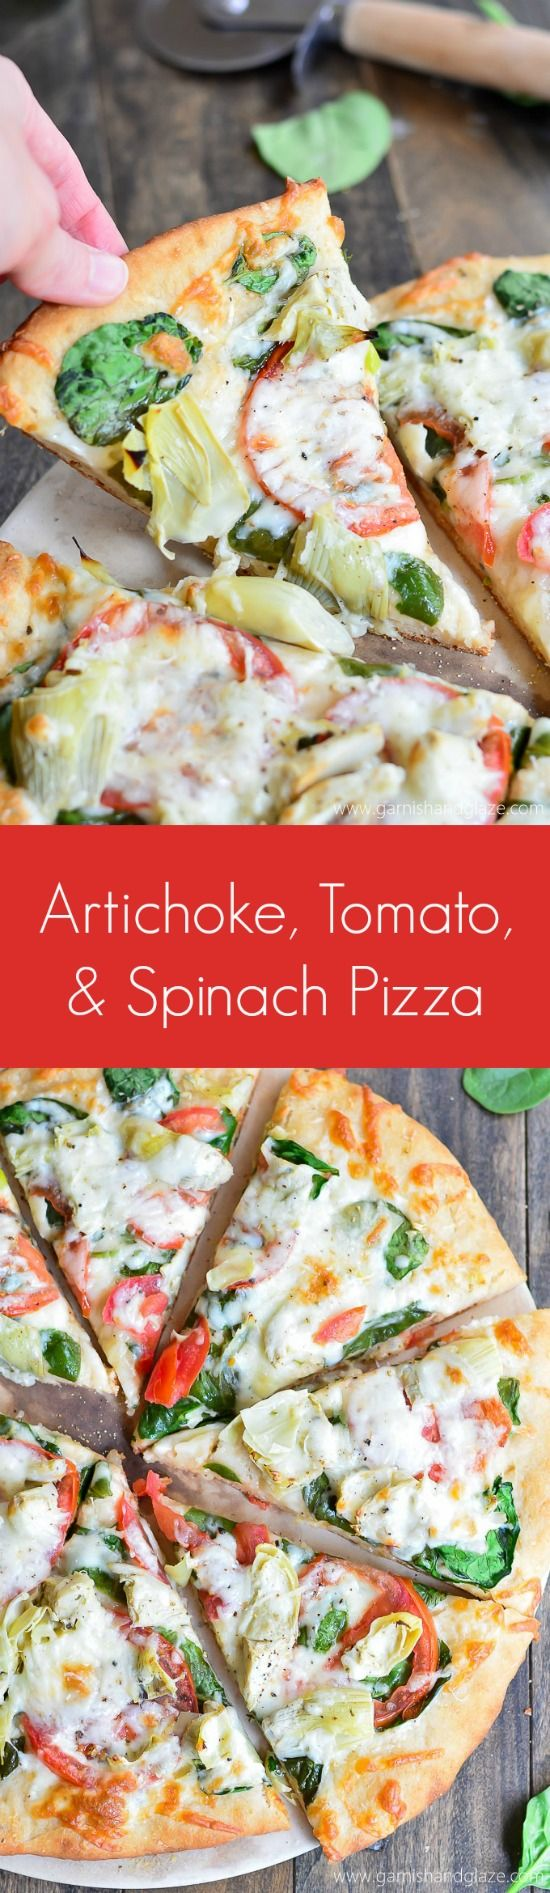 Artichoke, Tomato, and Spinach Pizza Recipe via Garnish & Glaze - Go meatless with this veggie topped Artichoke, Tomato, and Spinach Pizza made on a No Knead, No Rise Pizza Dough crust.